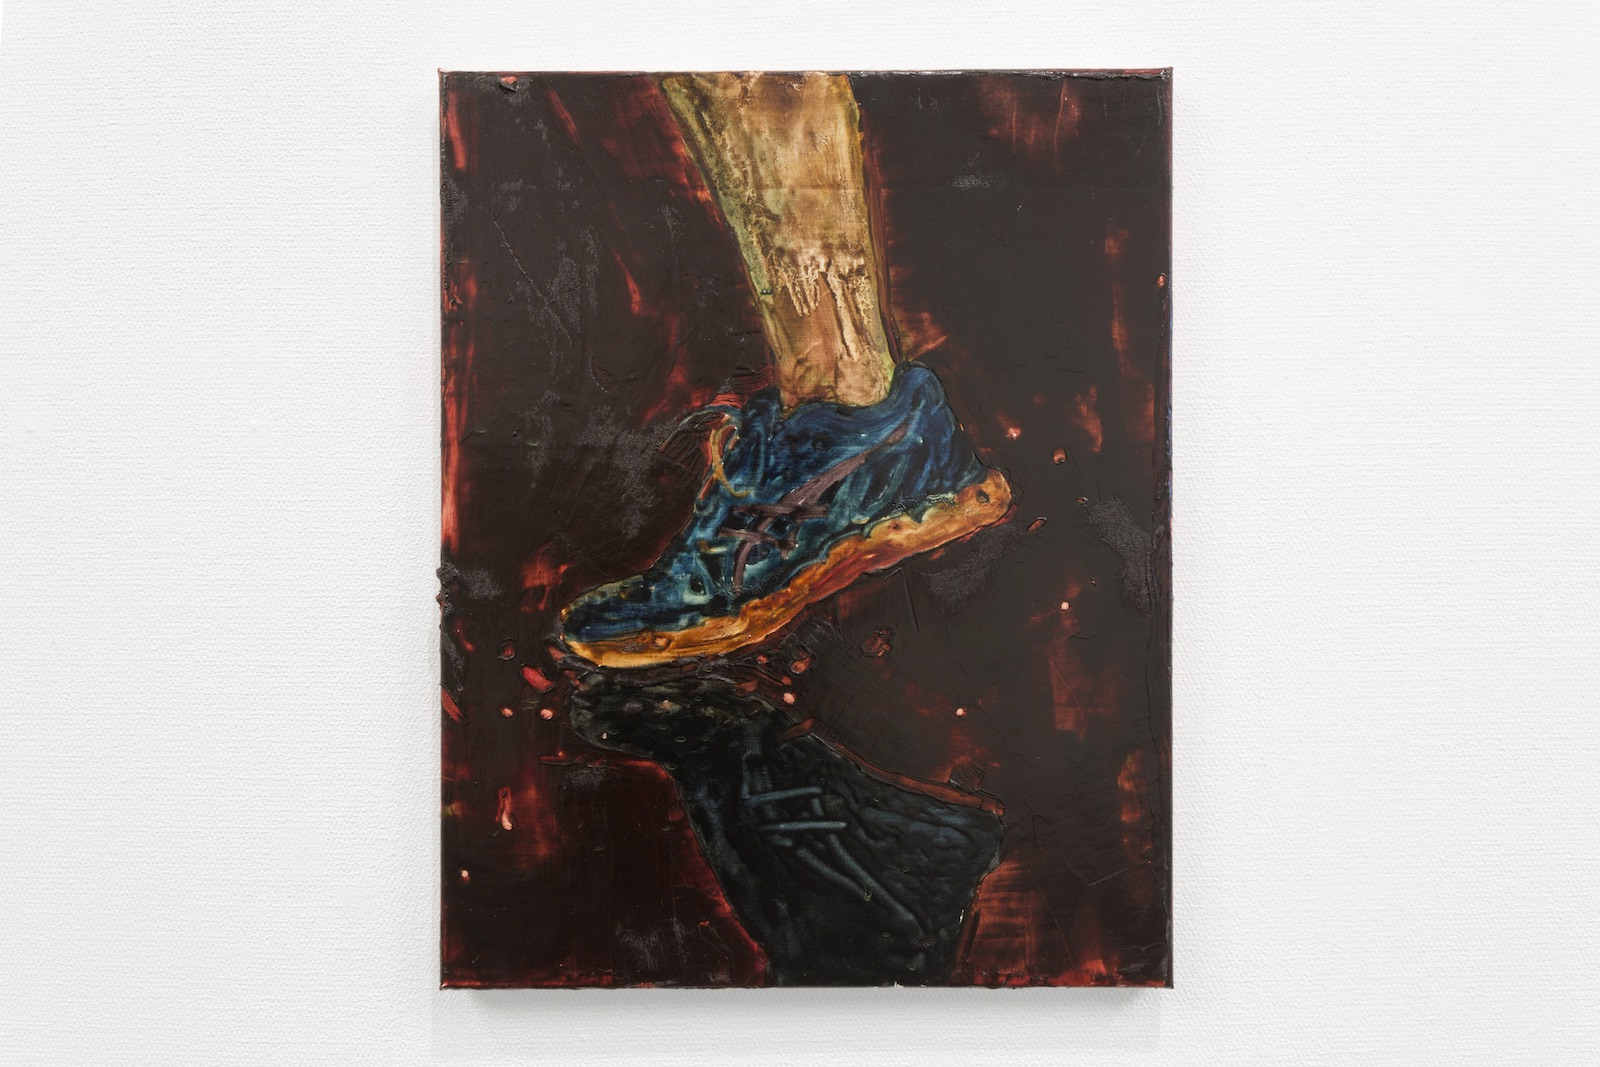 Asics, 2017, oil on canvas, 50 x 40 cm.